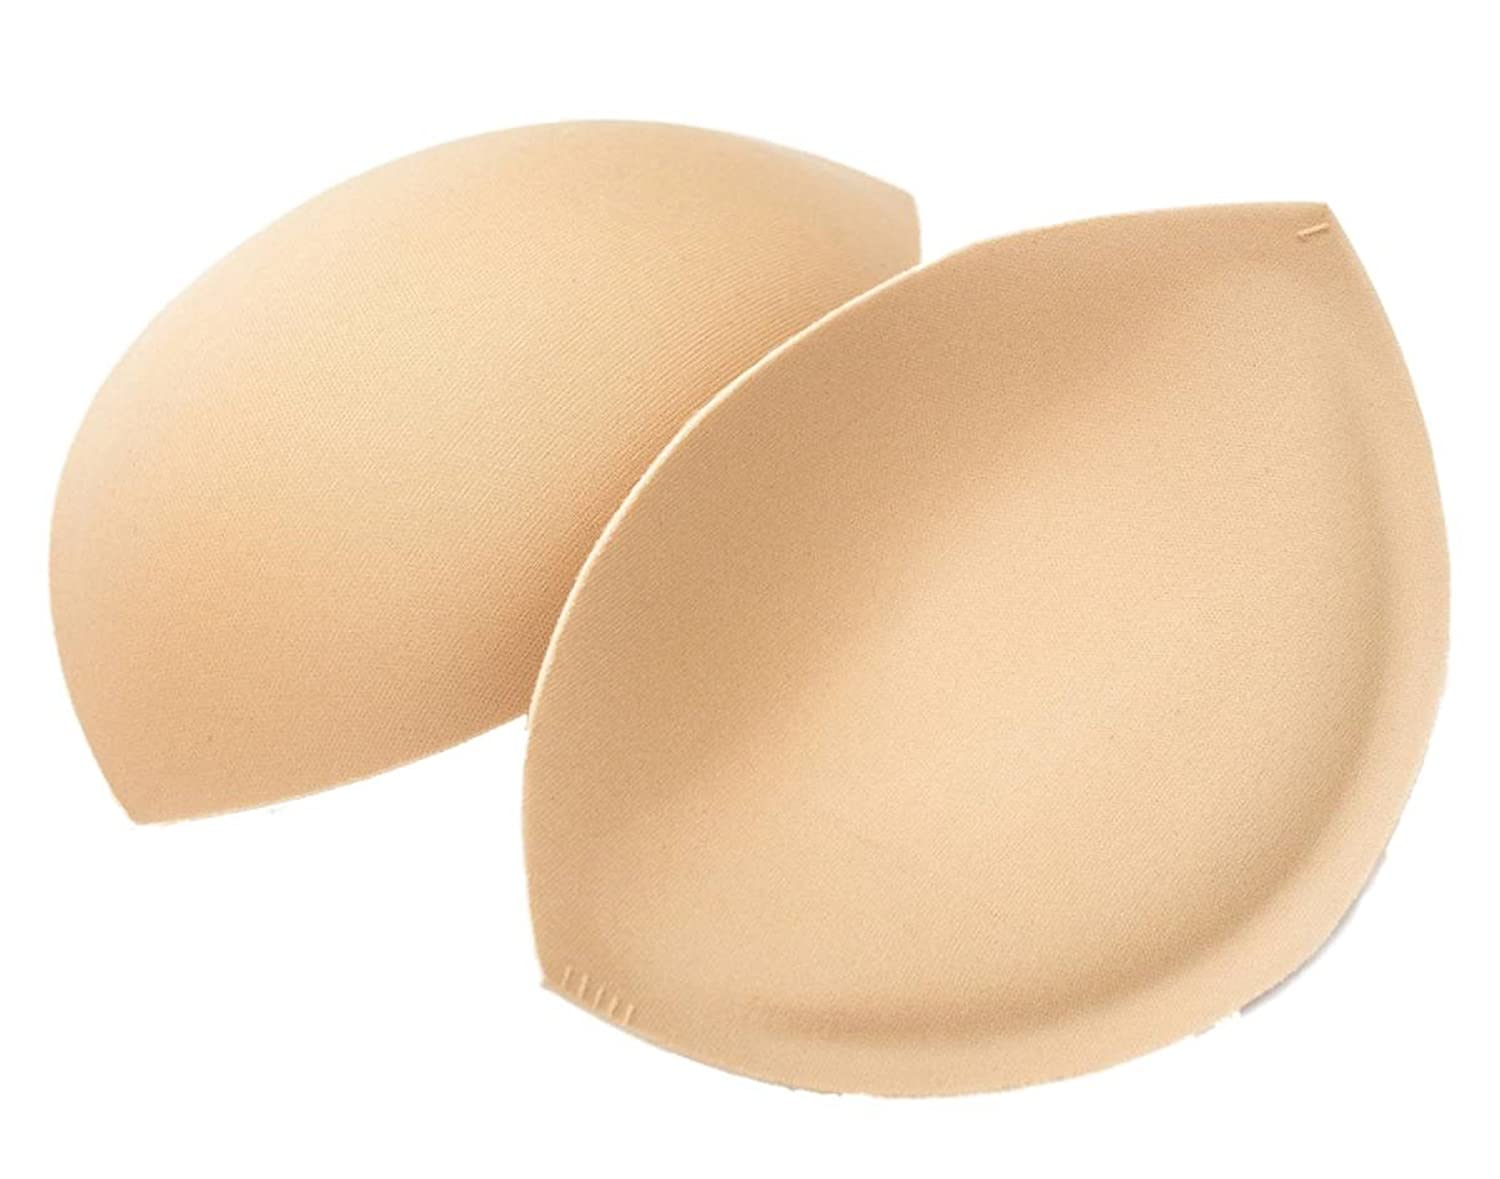 Confetti Cups - Sew in Bra Cups - Flesh, Ivory or Black (C, Nude) 300642F